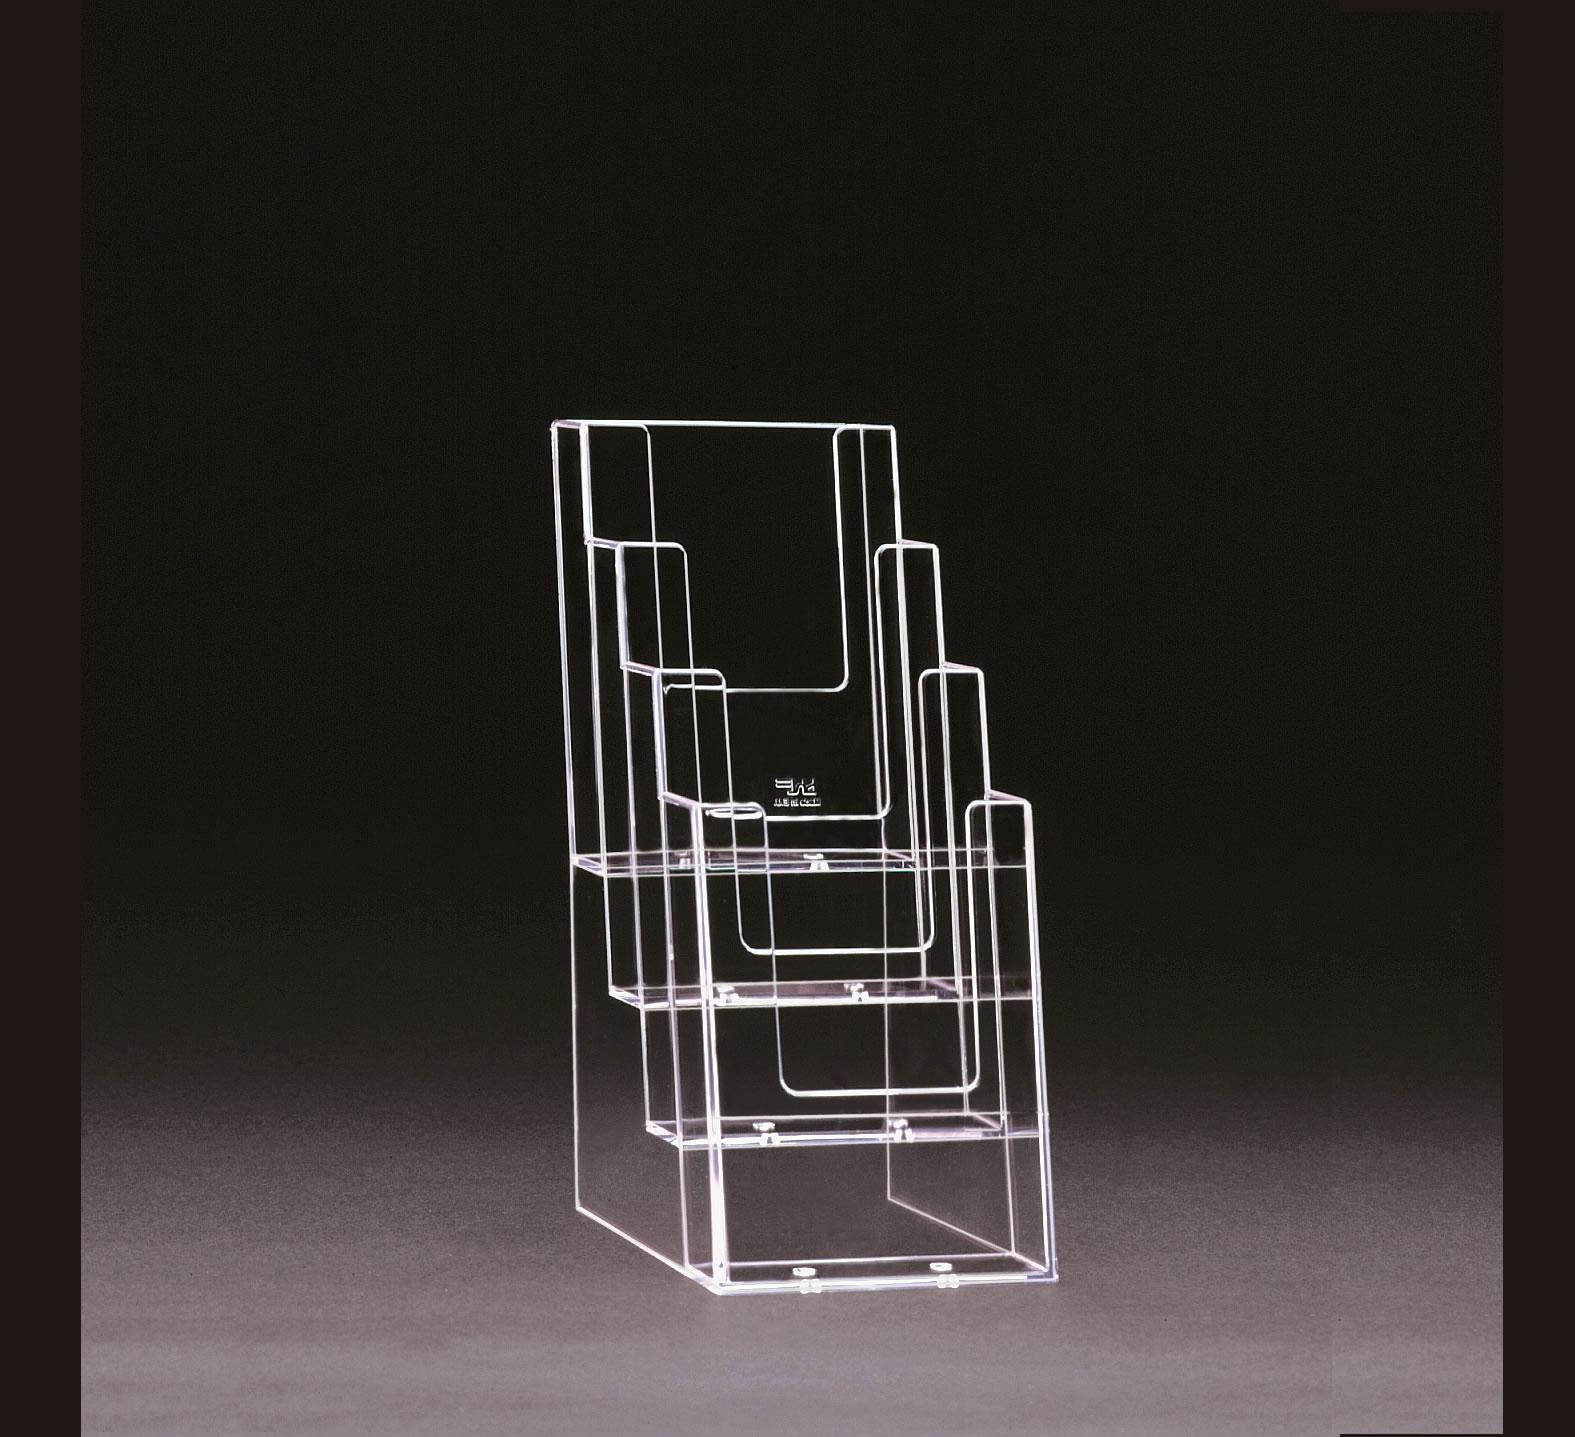 DL 1/3rd A4 Tiered / Stacked  Leaflet Holder 4 high